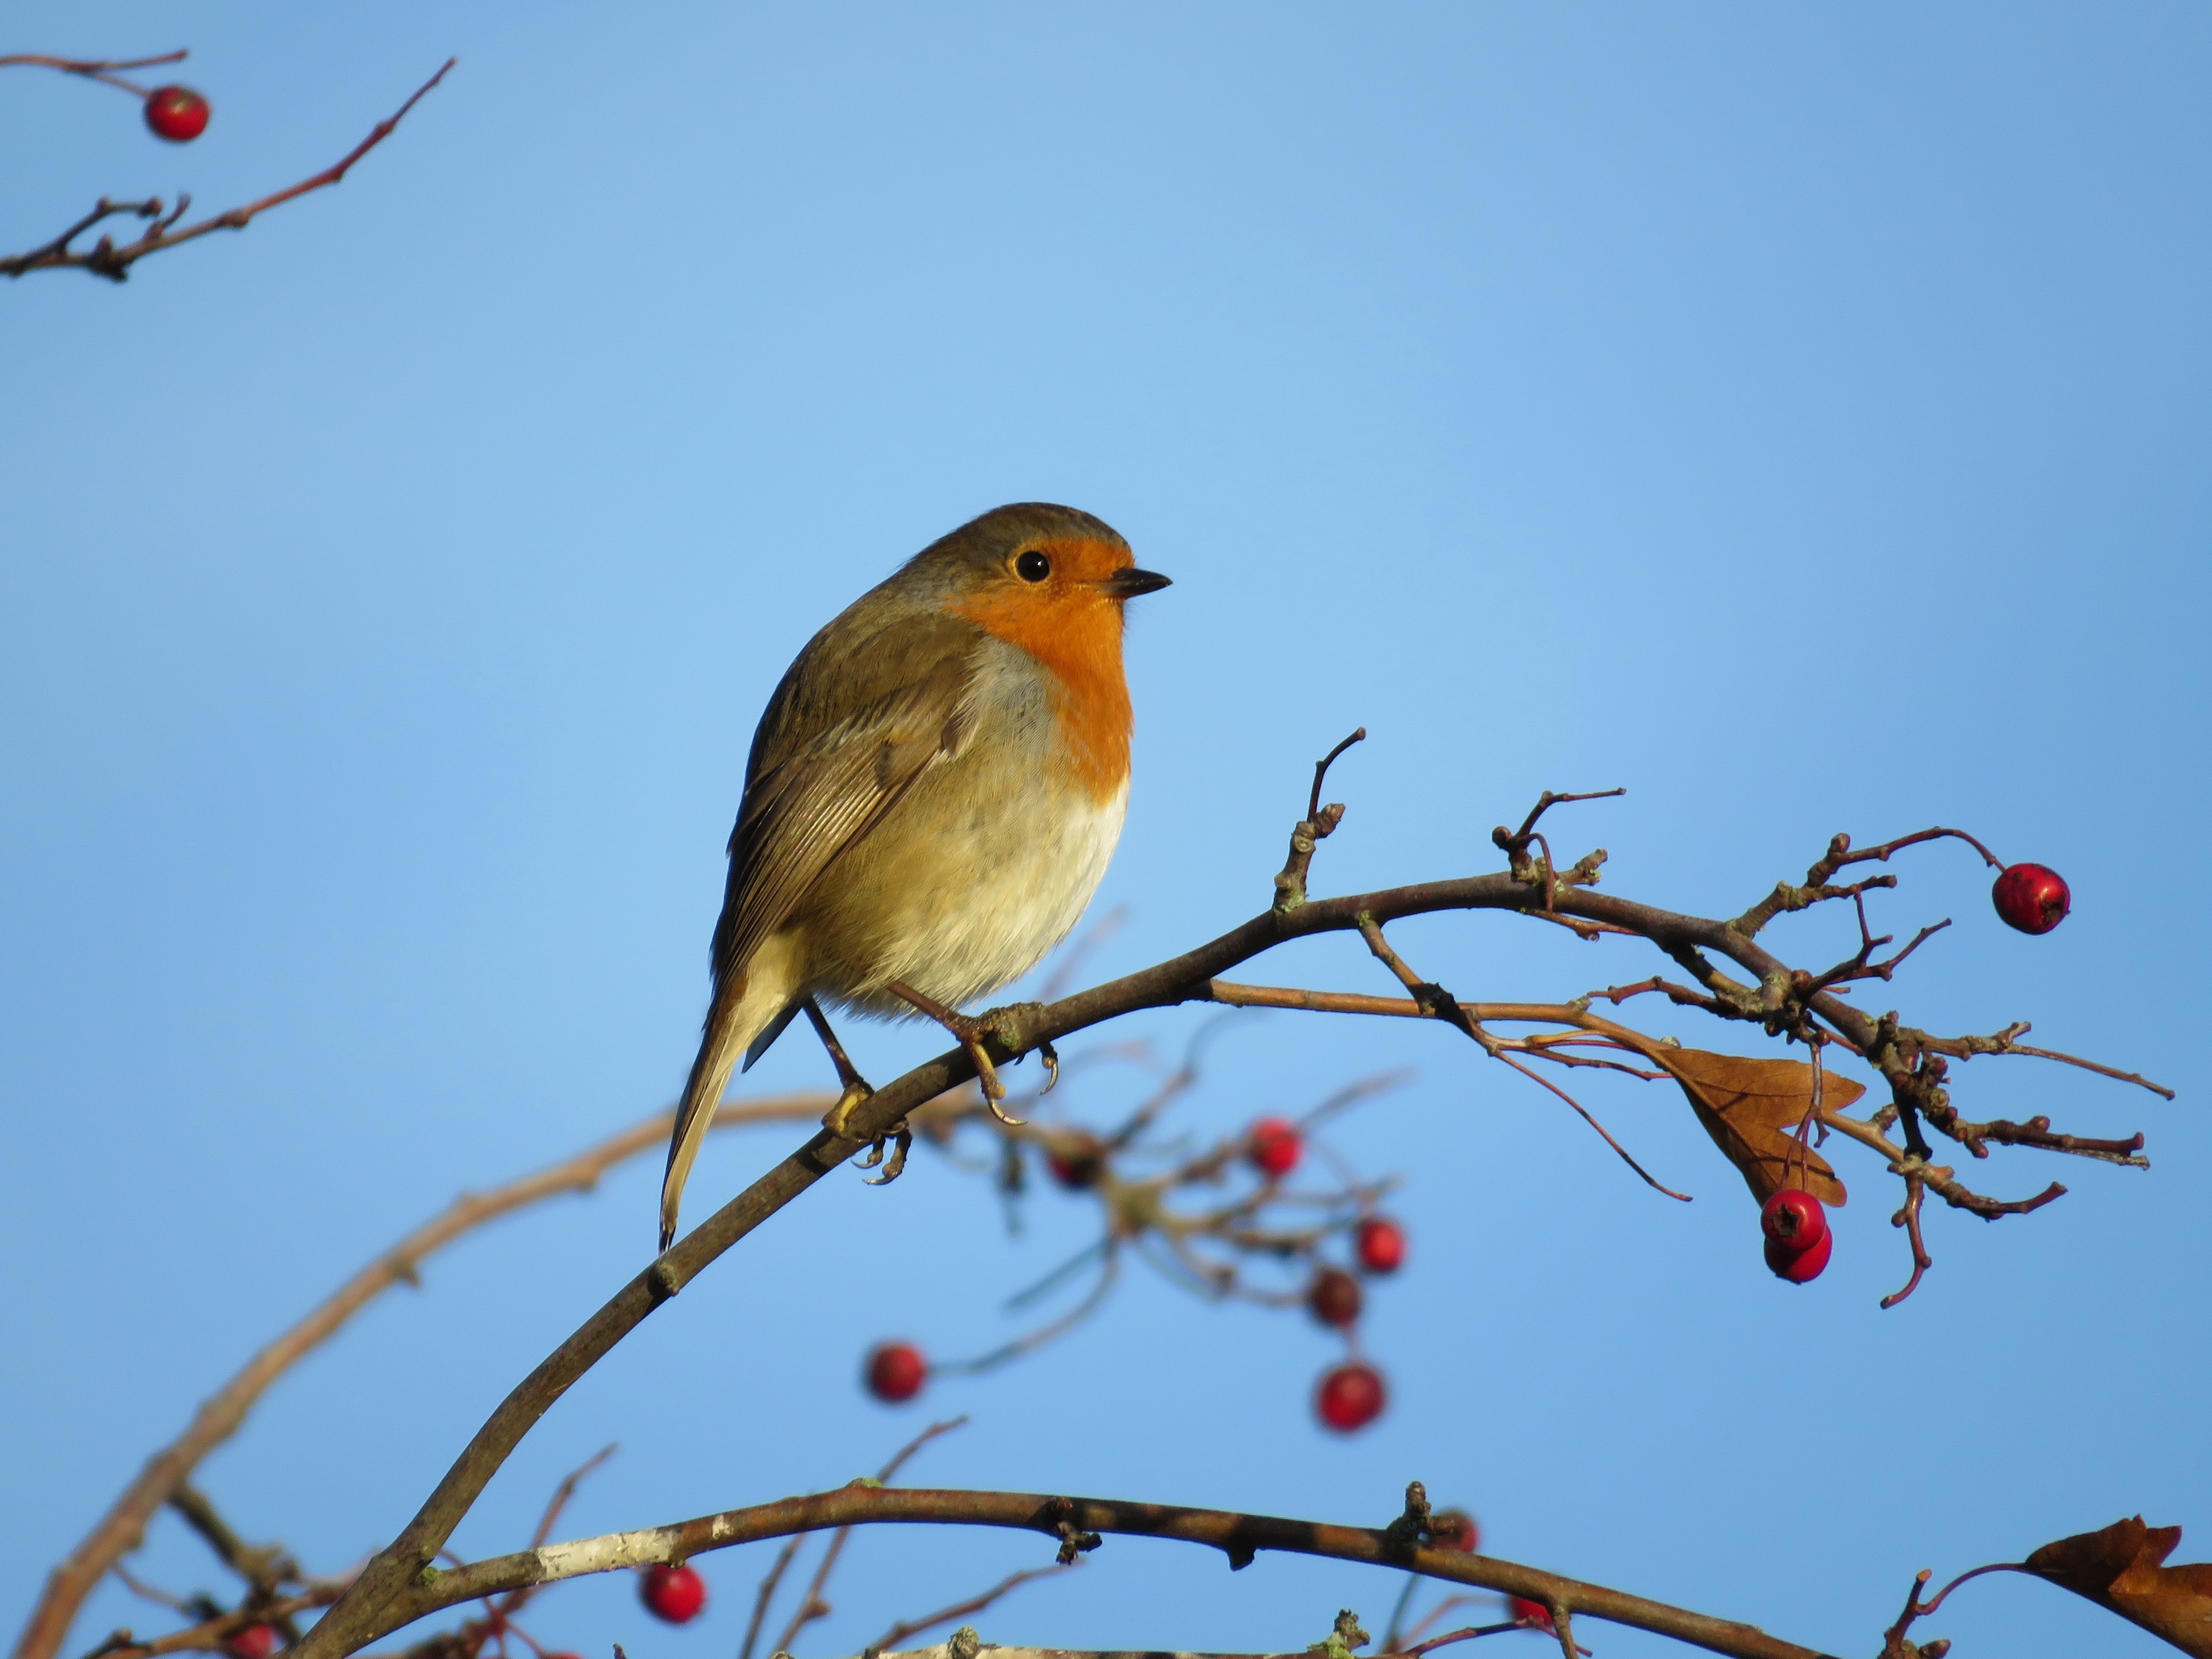 a bird sits on a branch surrounded by berries